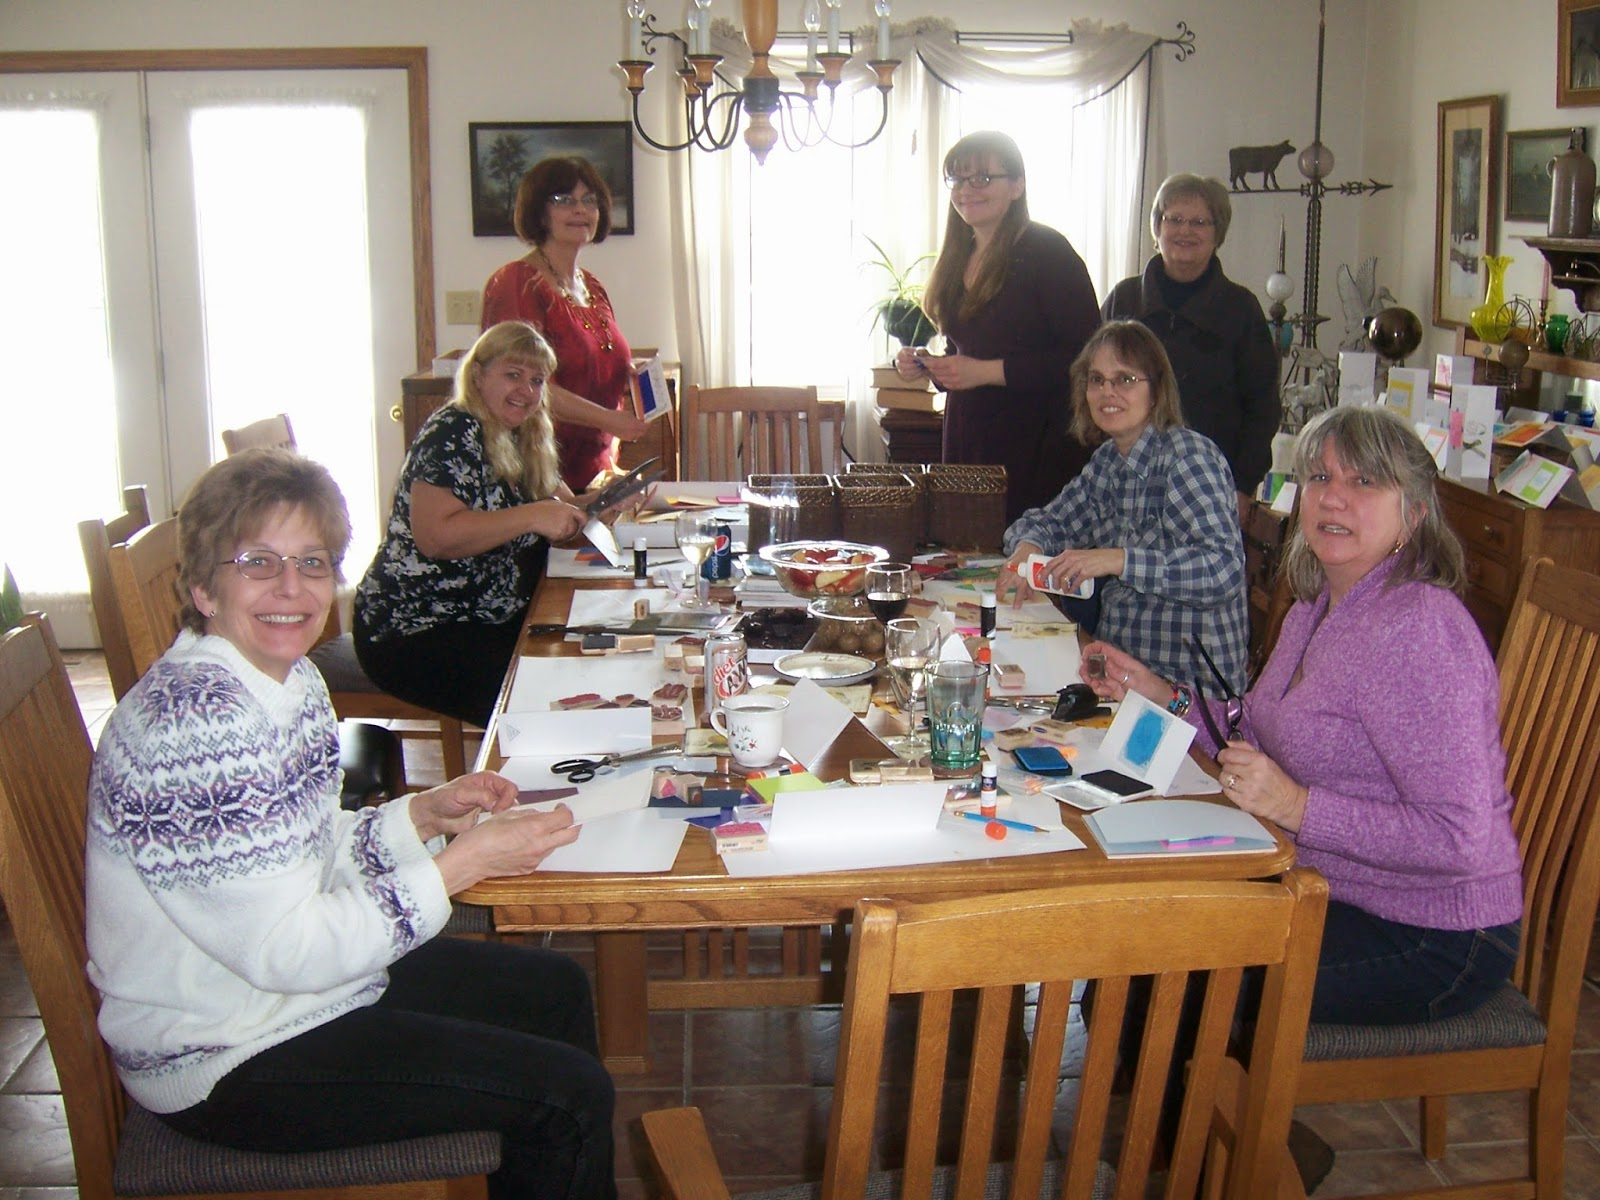 Throw a party for friends from your church. Make cards together as a group to send to members. Ask everyone to bring something along such as papers, envelopes, embellishments, rubber stamps, old cards, clippings from seed magazines, tools, scissors, glue, etc.